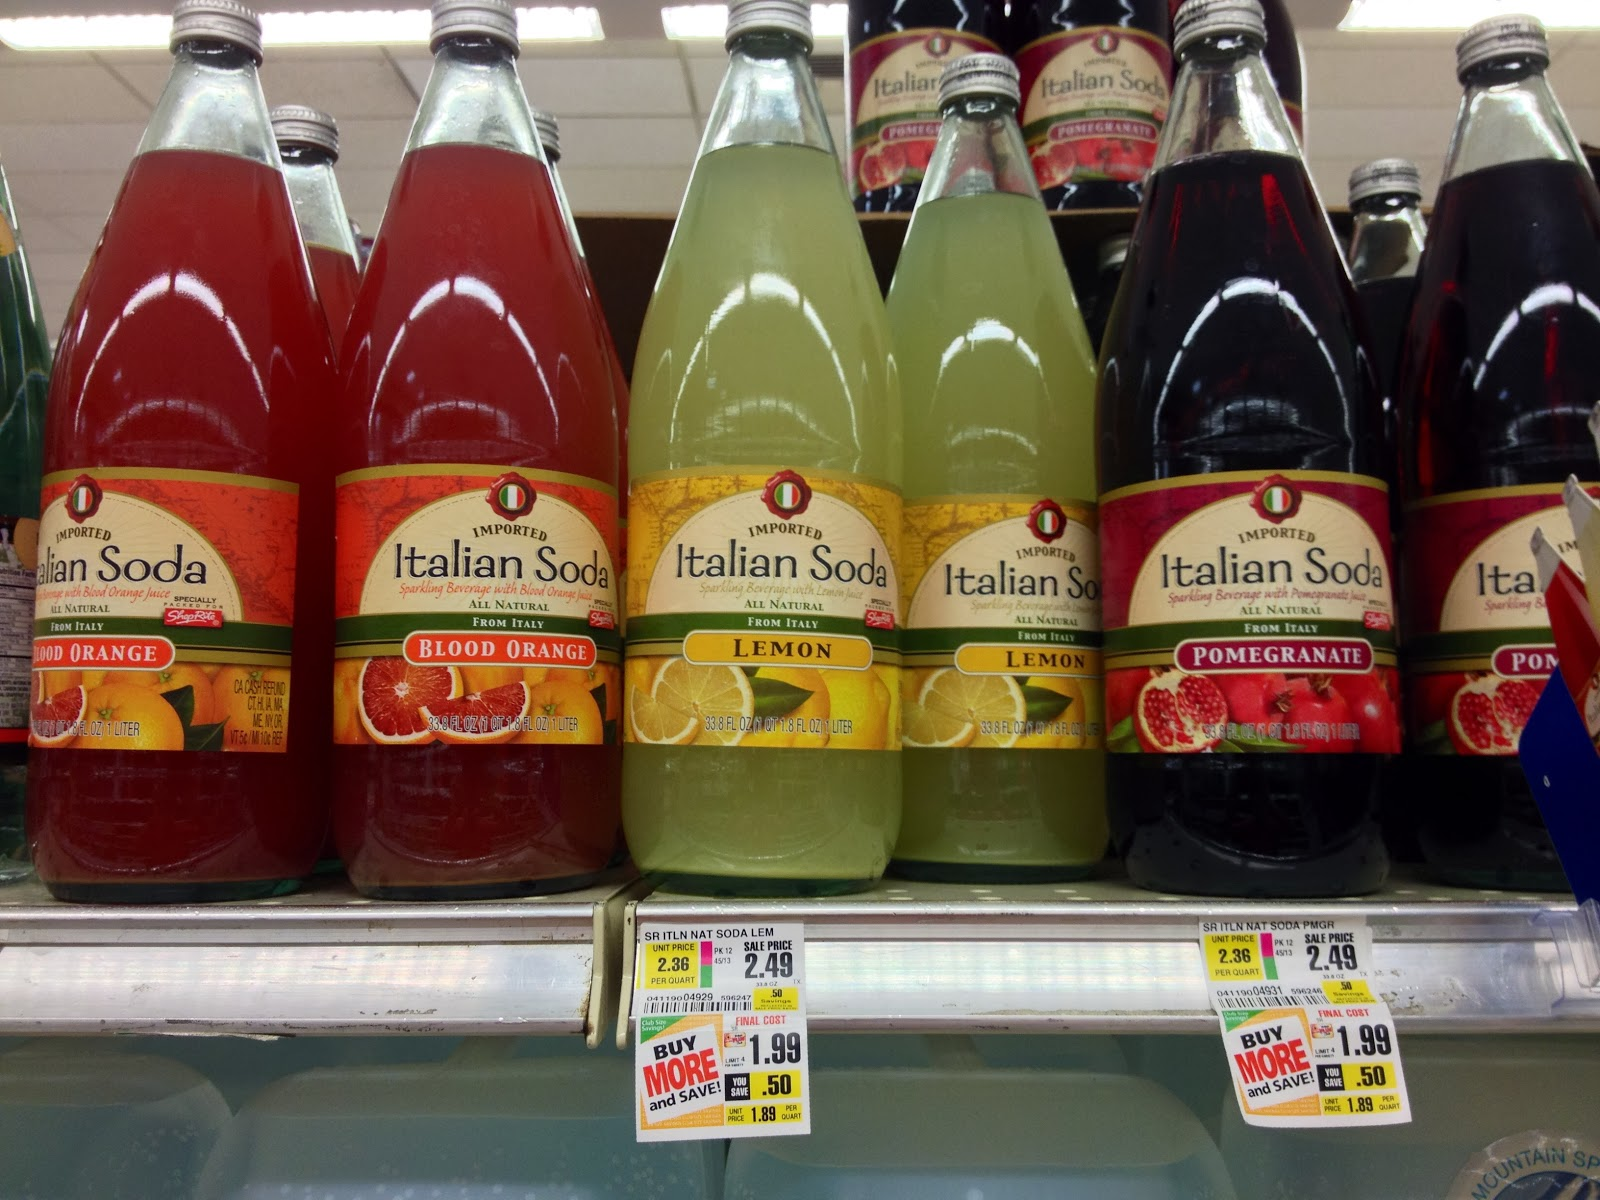 Shoprite can can sale 2015 - Imported Italian Soda At Shoprite Contains Only 2 Juice Pomegranate To 12 Juice Blood Orange And Lemon